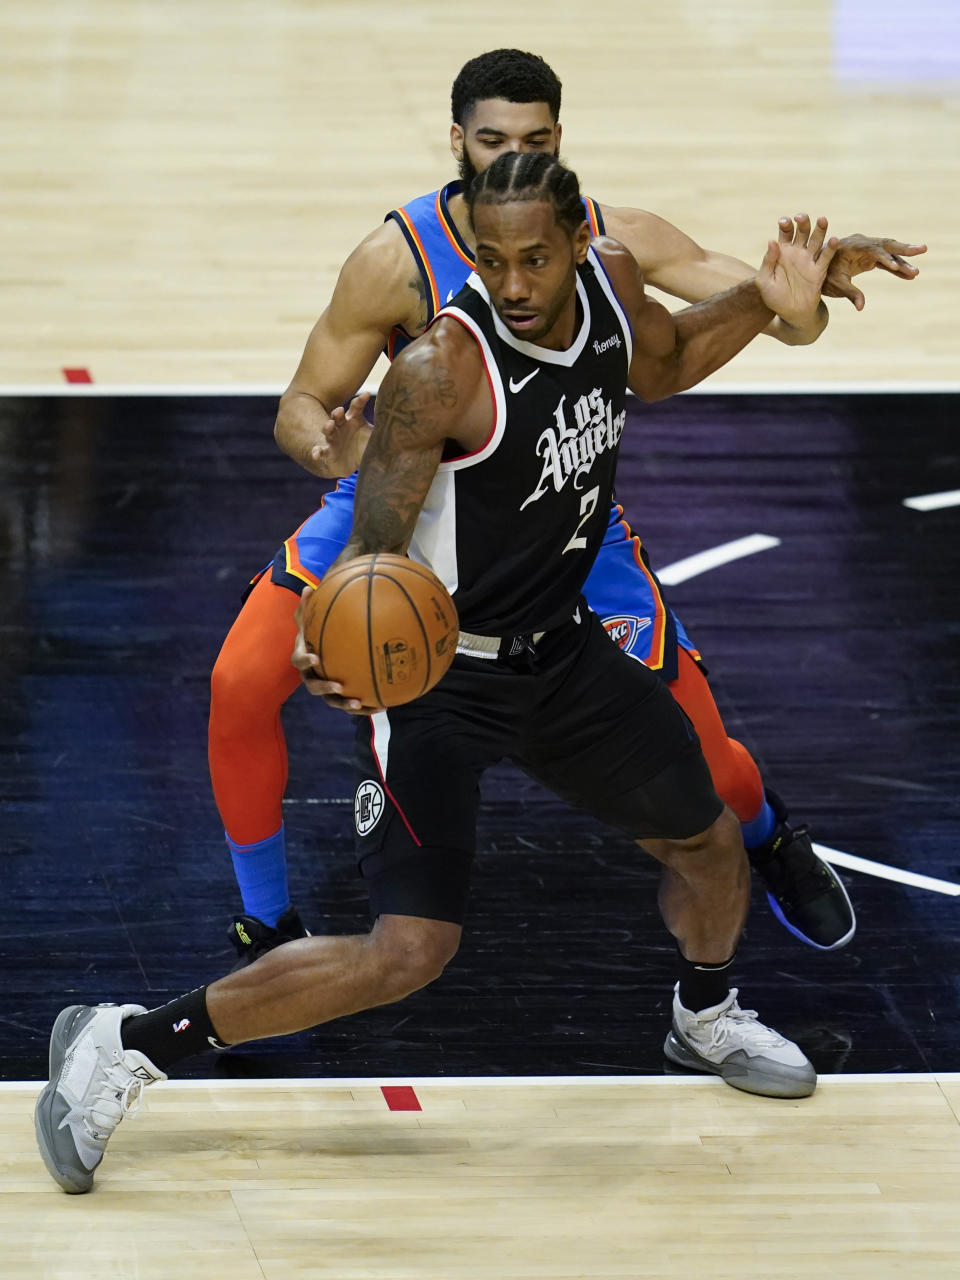 Los Angeles Clippers forward Kawhi Leonard (2) controls the ball against Oklahoma City Thunder guard Kenrich Williams (34) during the first quarter of an NBA basketball game Sunday, Jan. 24, 2021, in Los Angeles. (AP Photo/Ashley Landis)